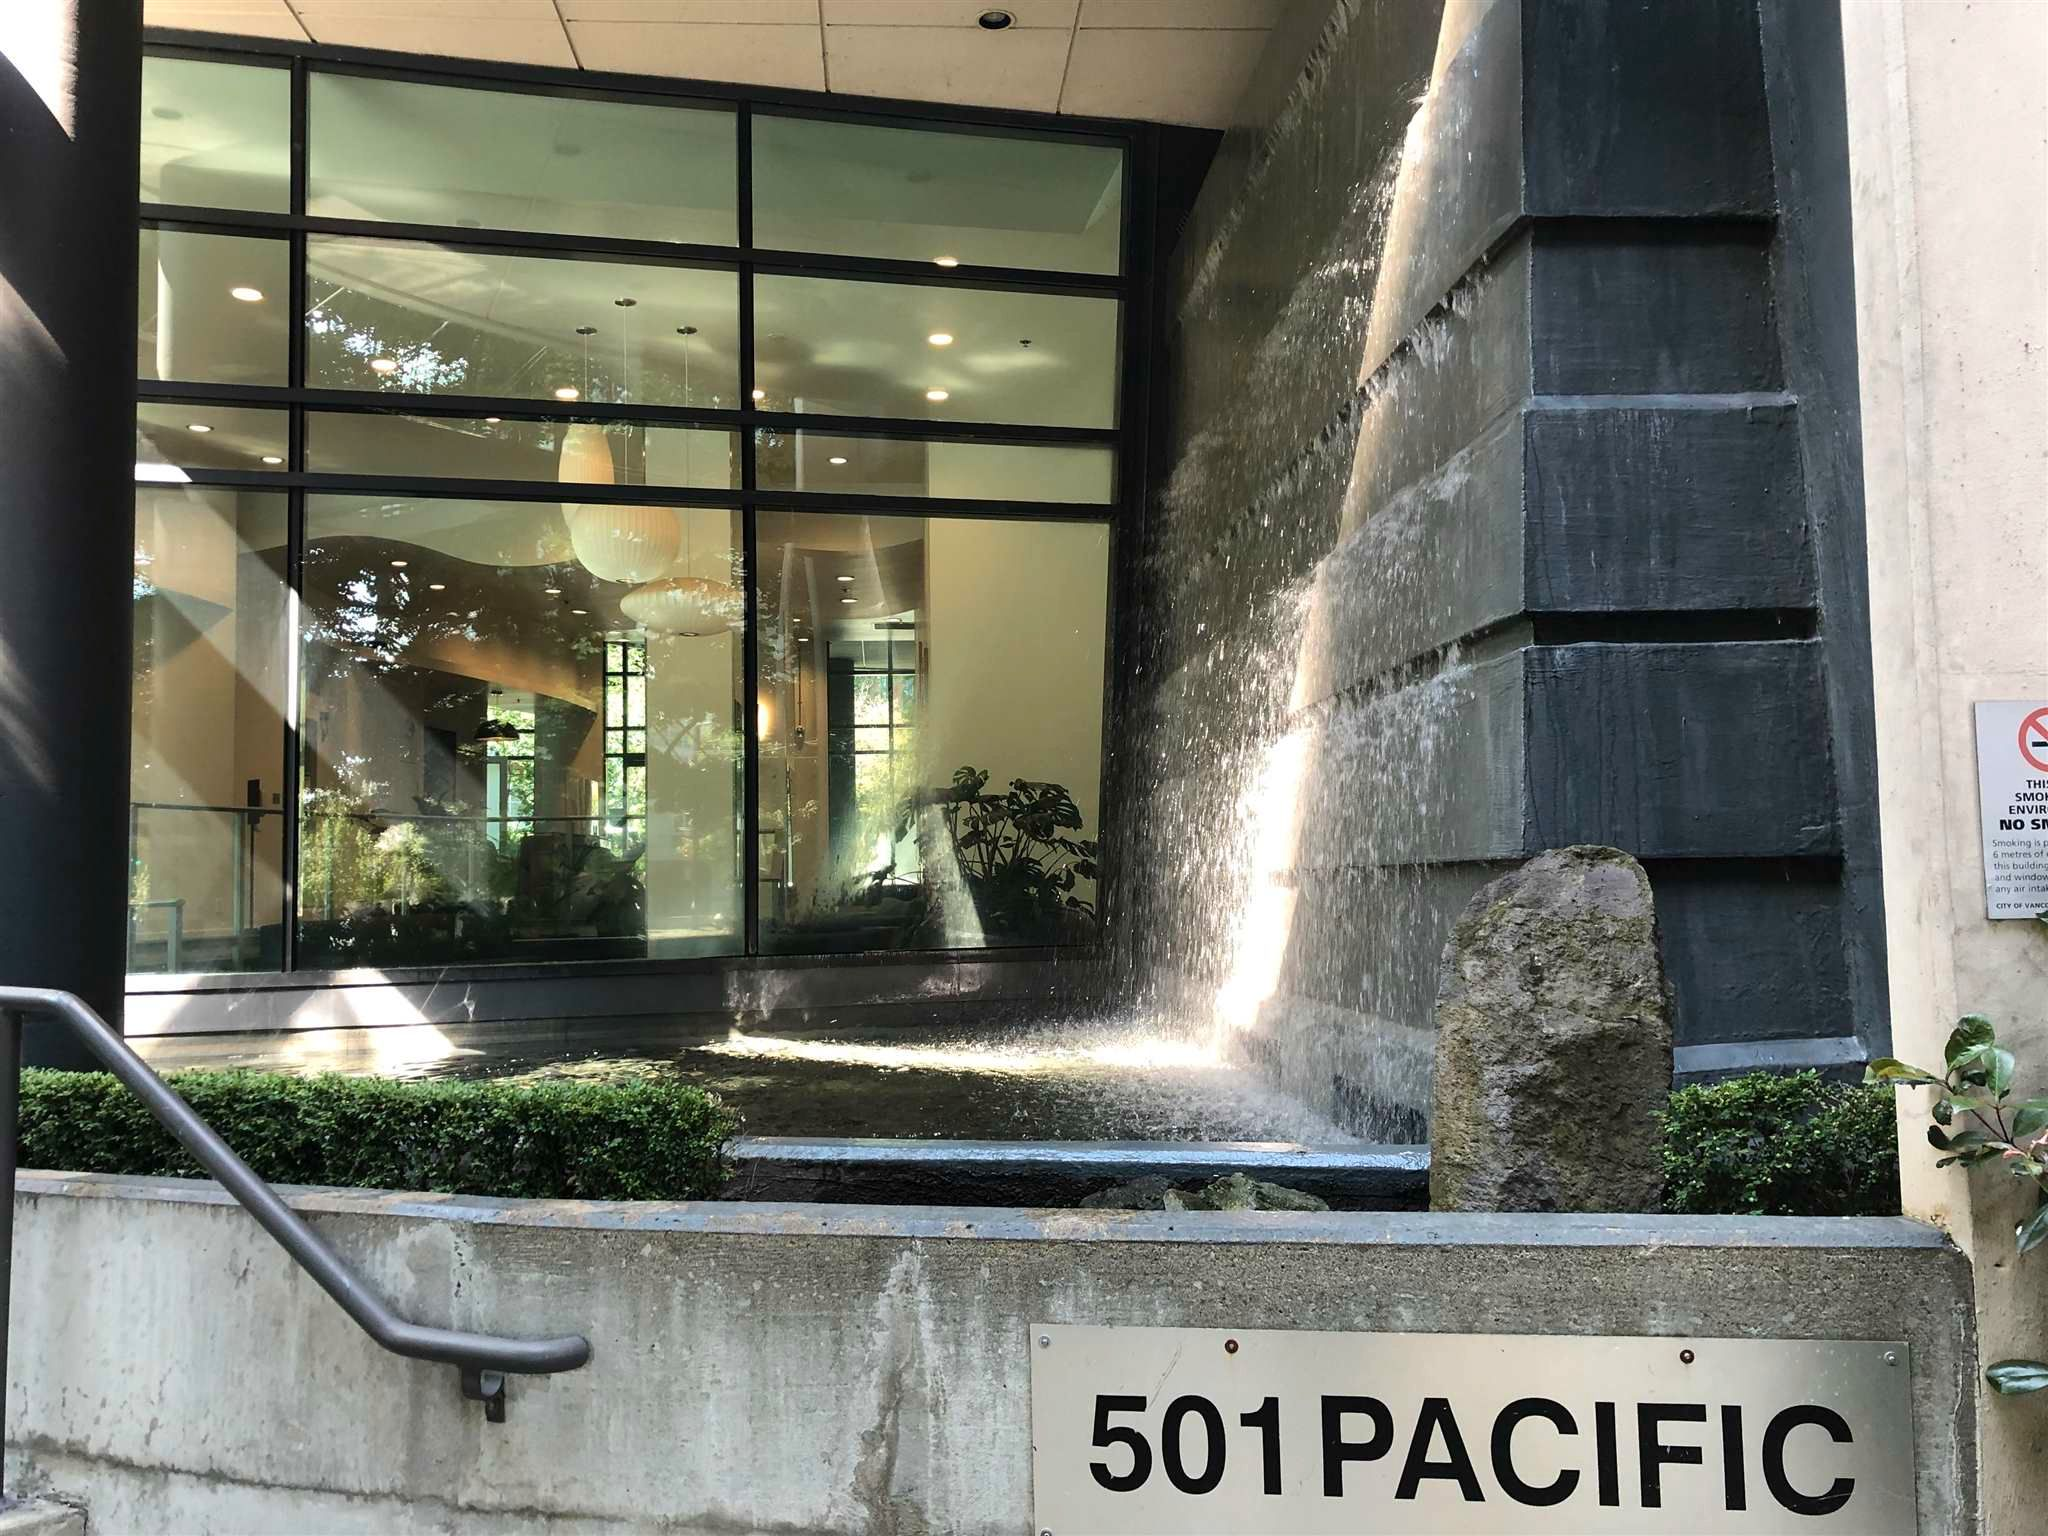 """Main Photo: 503 501 PACIFIC Street in Vancouver: Downtown VW Condo for sale in """"501 PACIFIC"""" (Vancouver West)  : MLS®# R2599166"""